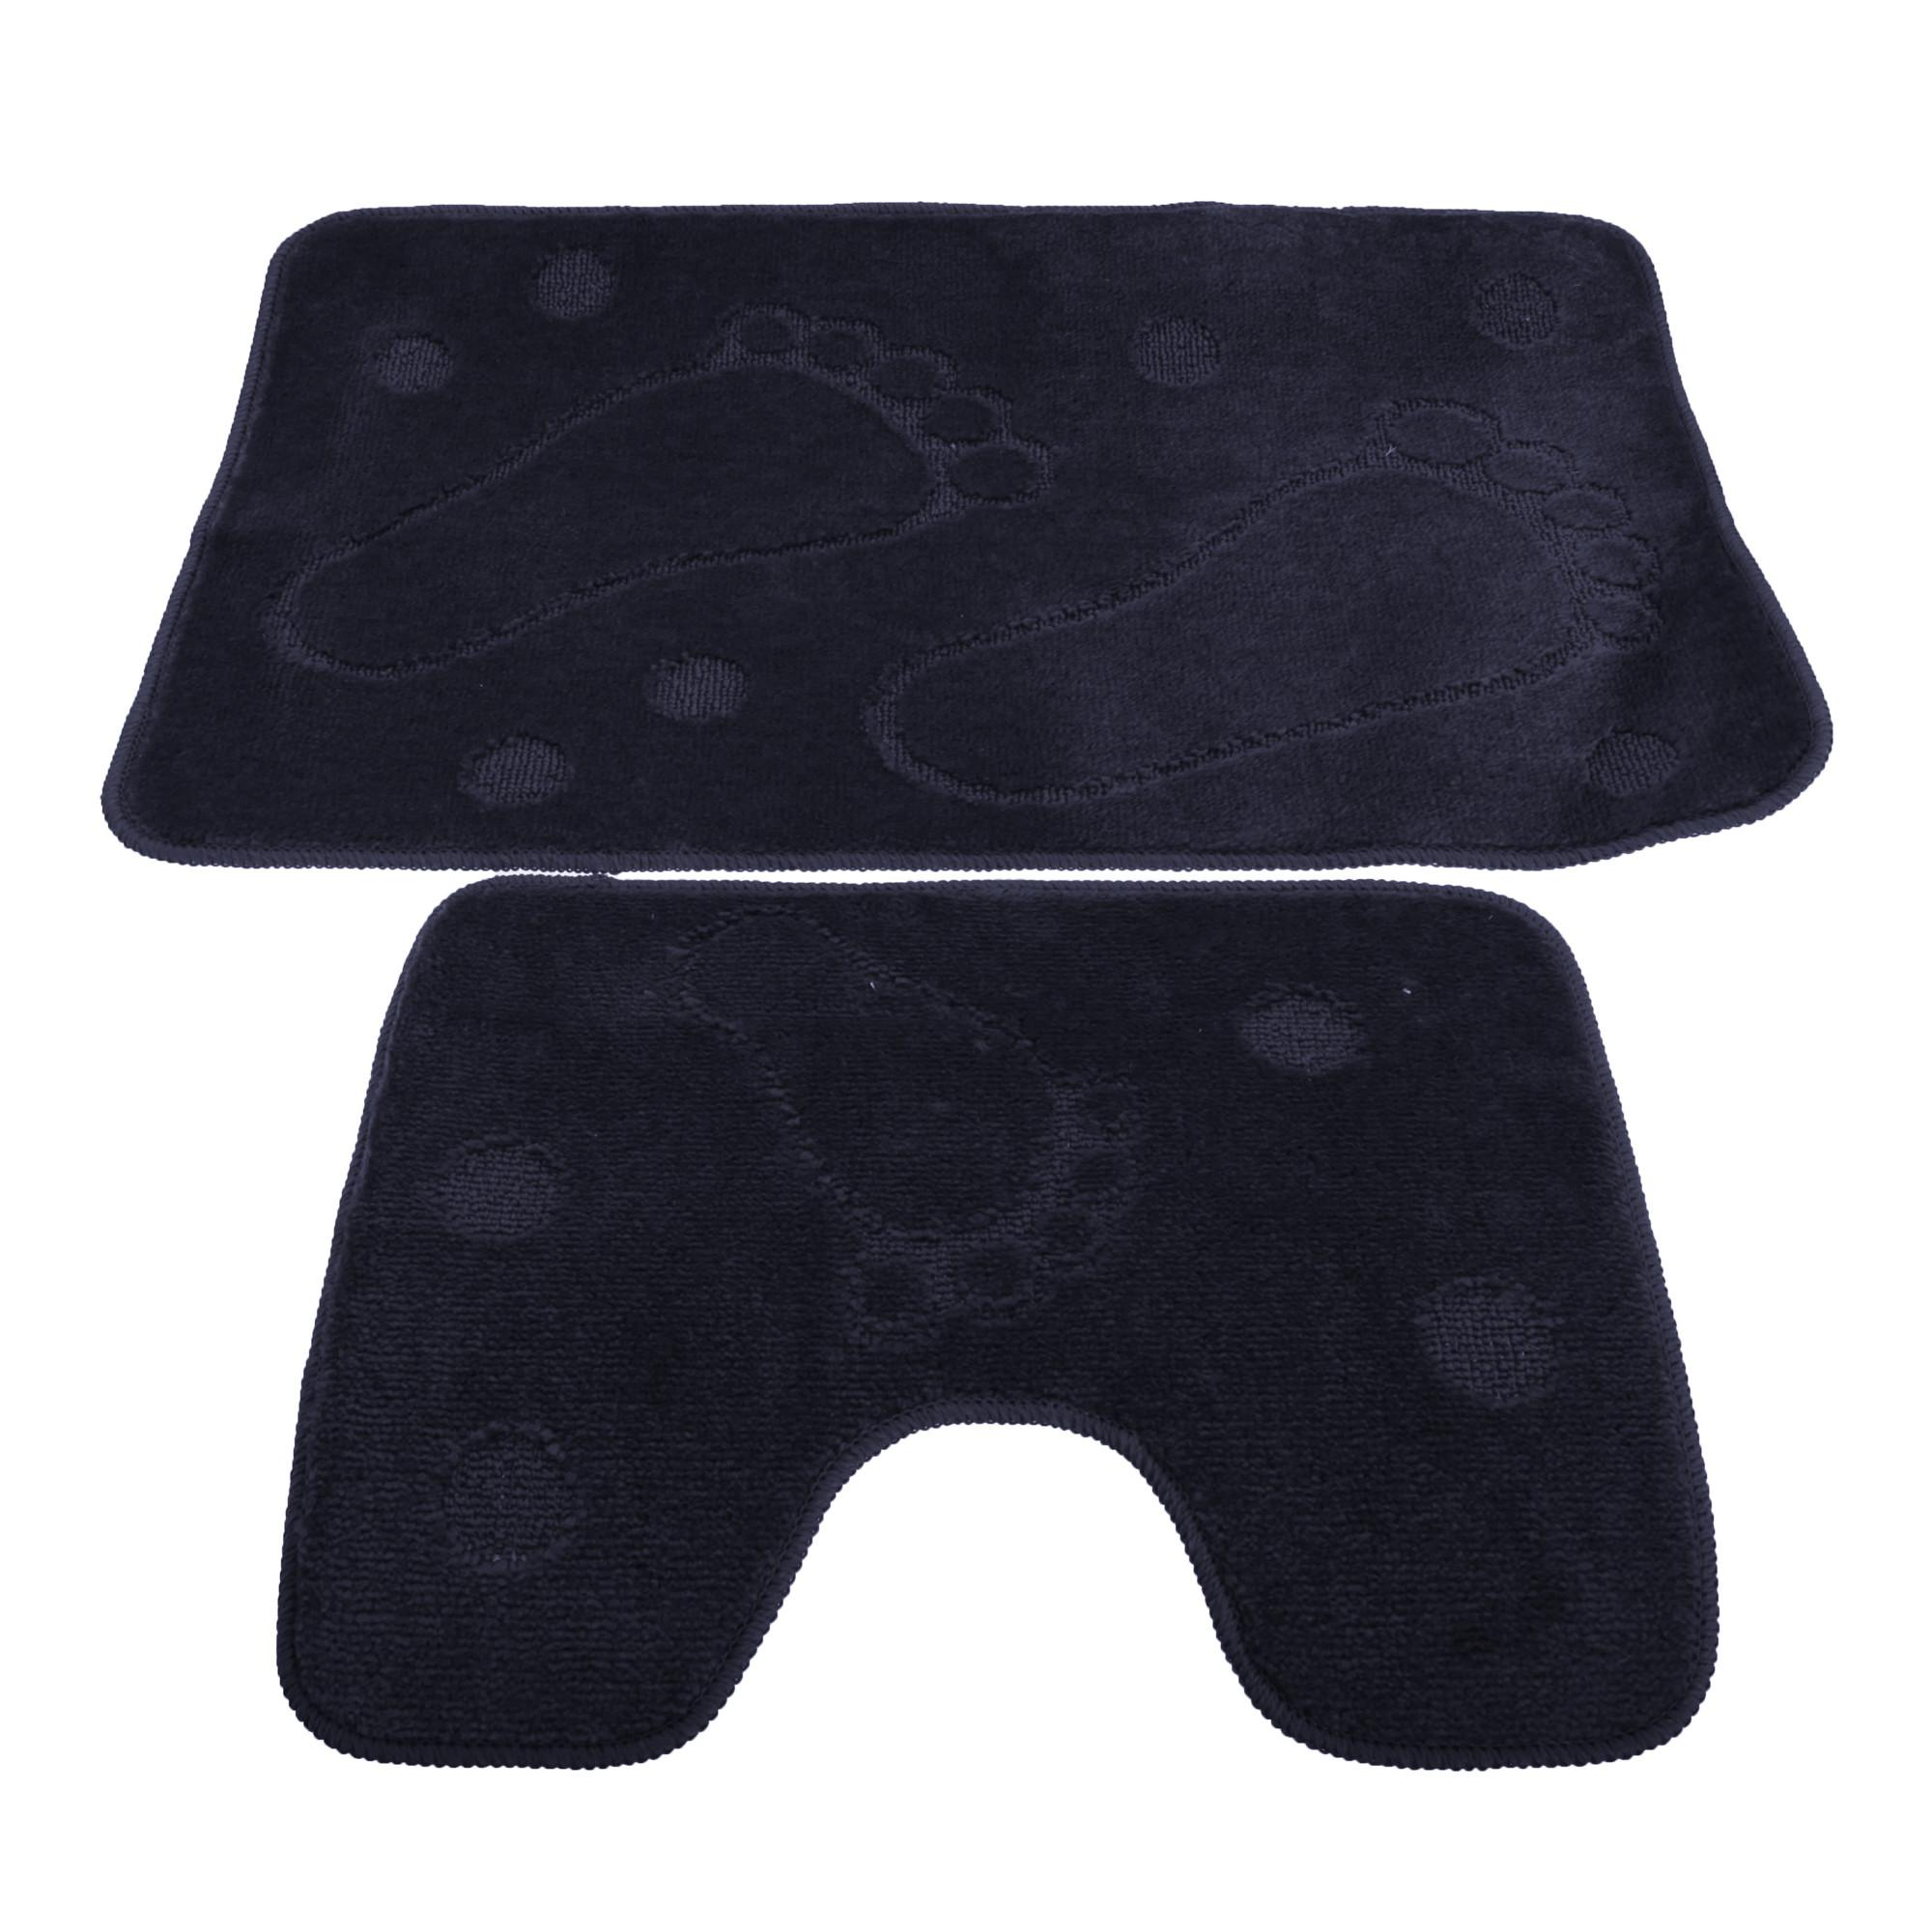 Piece Footprint Design Bathroom Bath Mat Pedestal